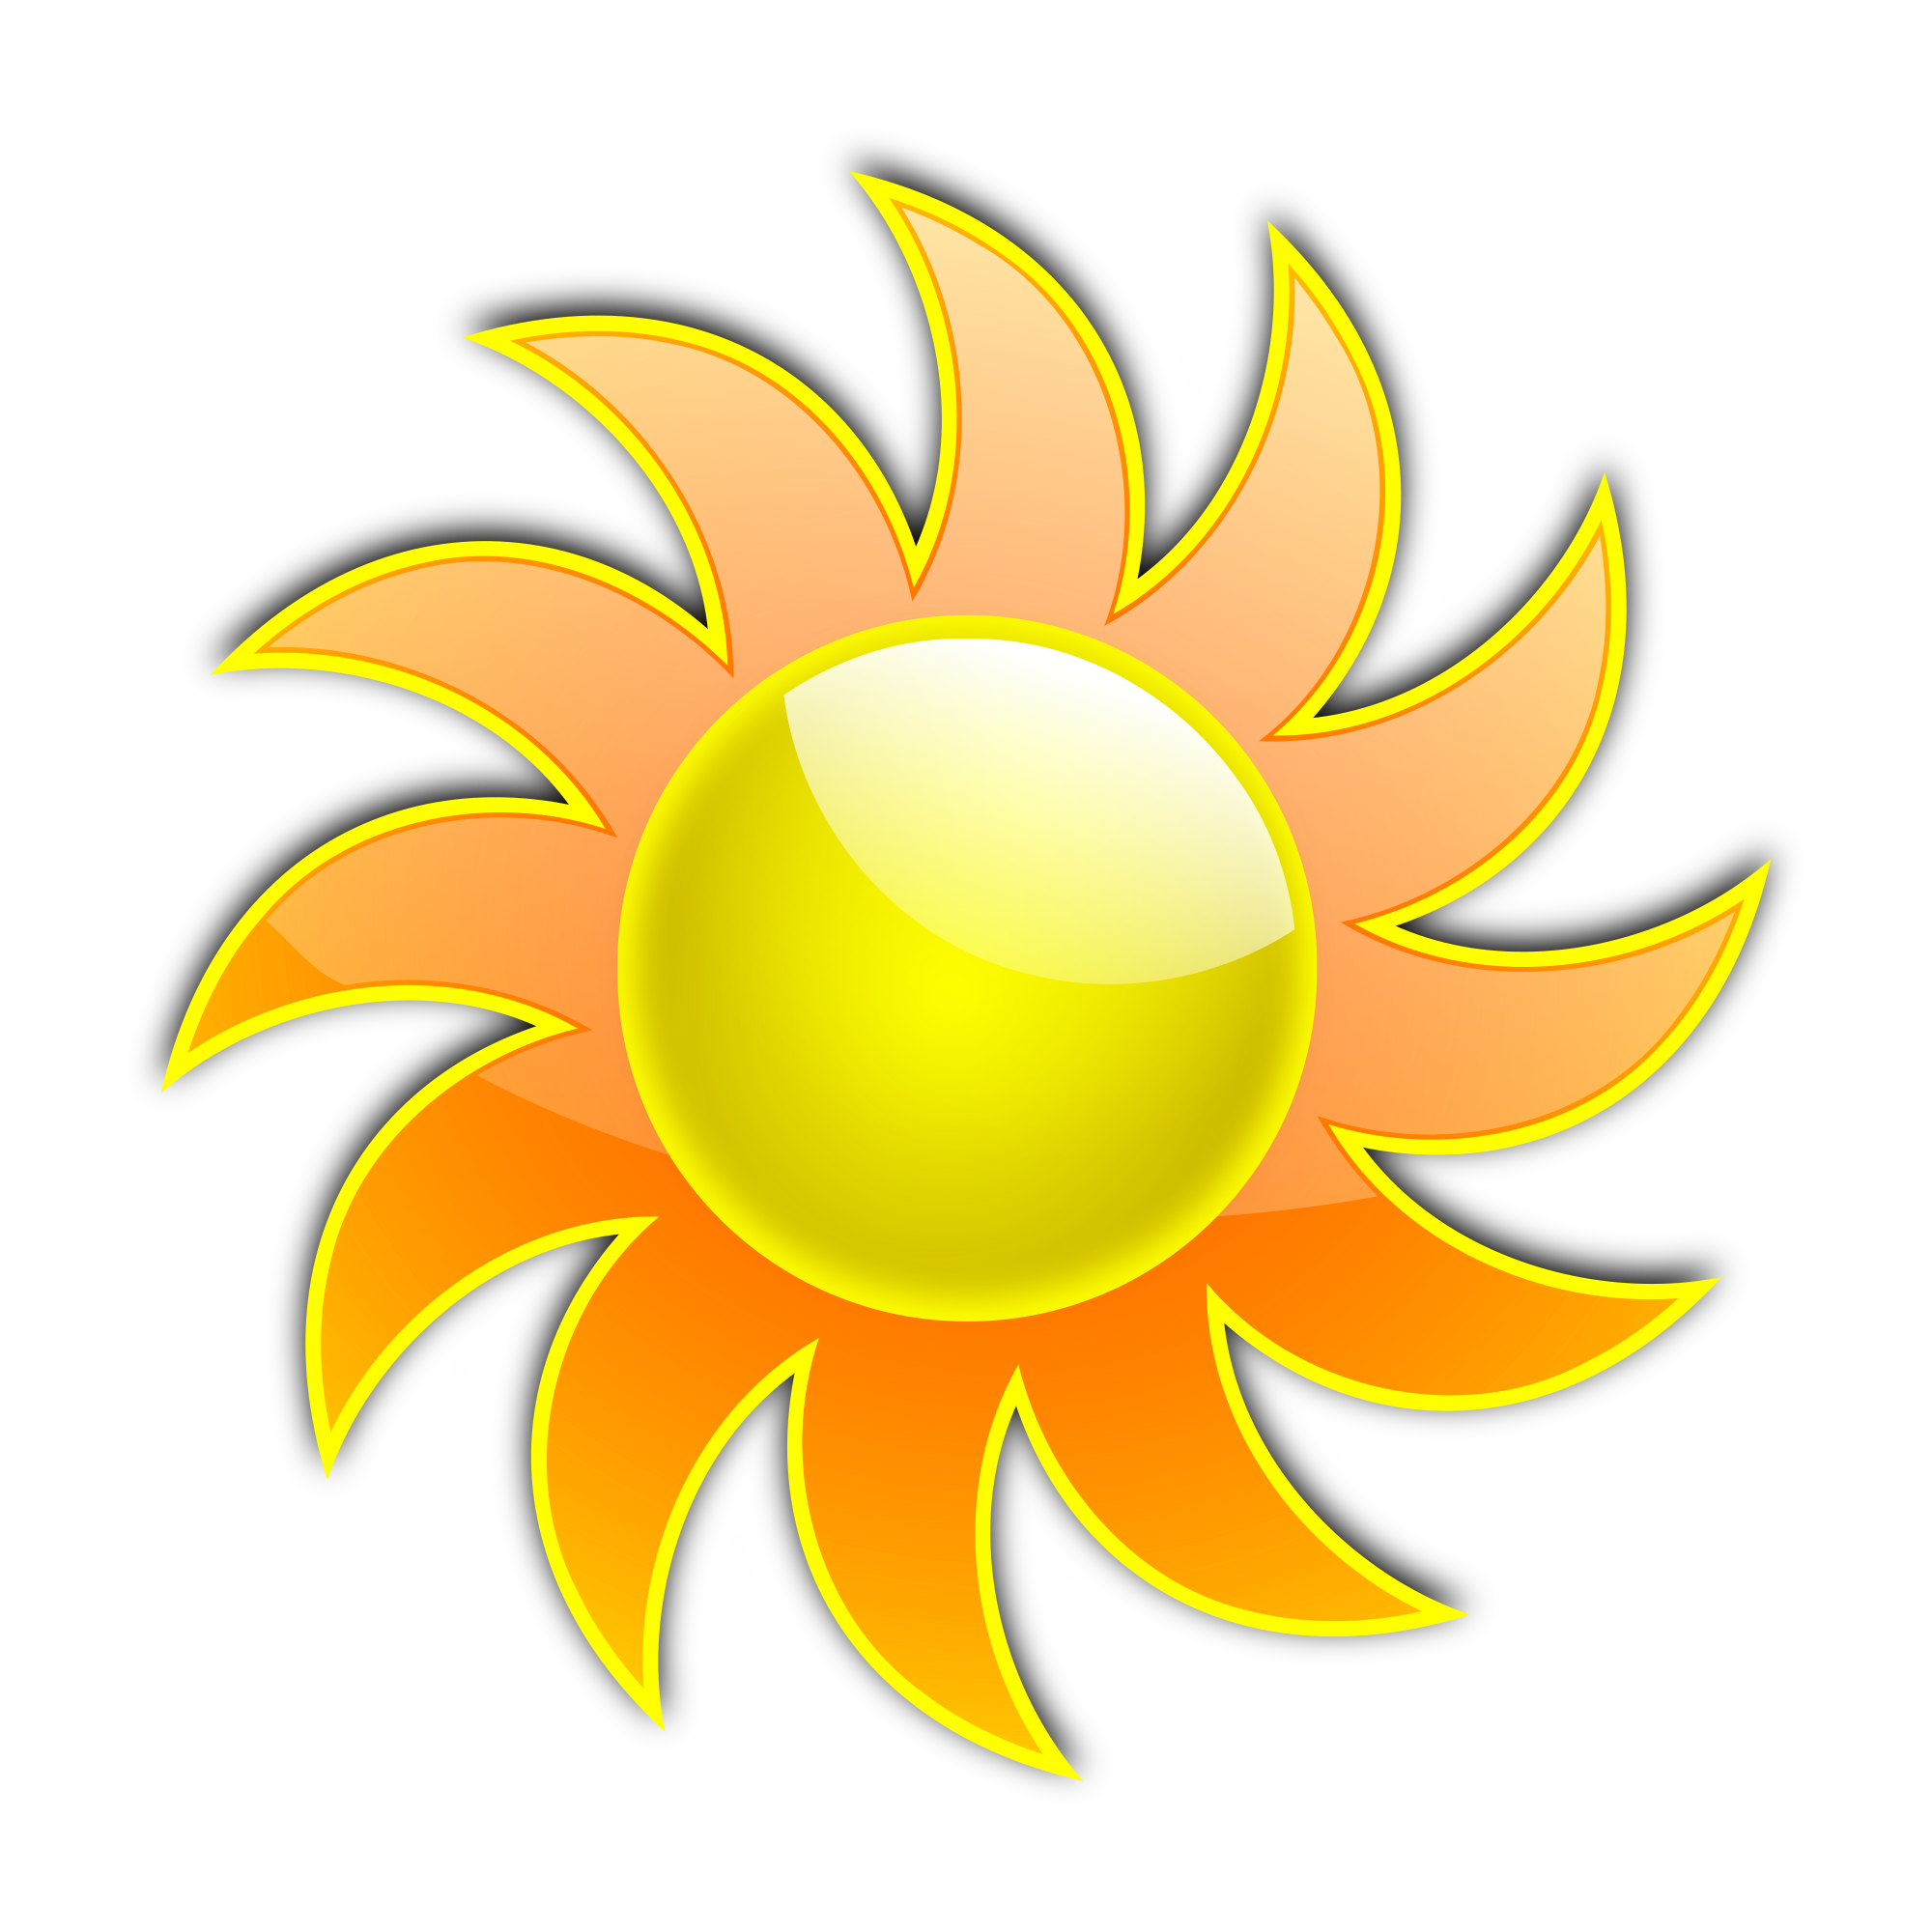 Free sun blazing ray clipart png royalty free stock Clip art sun clipart 2 - Clipartix png royalty free stock